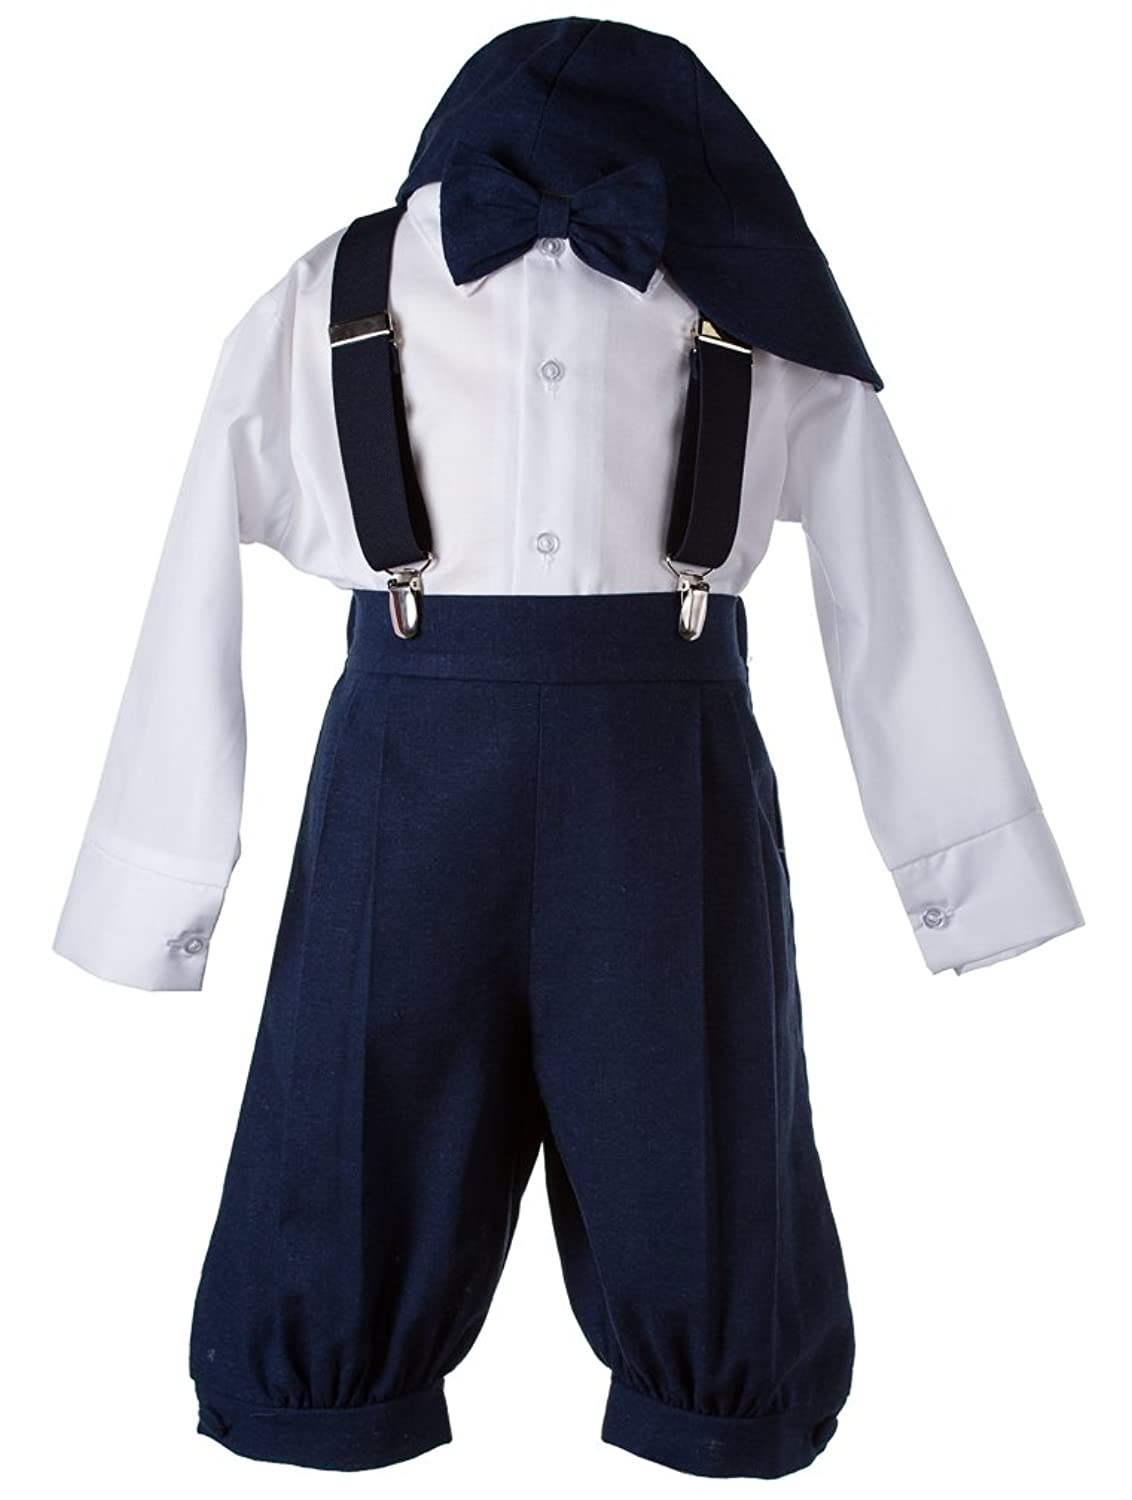 1940s Children's Clothing: Girls, Boys, Baby, Toddler Boys Navy Linen Knicker 5 Piece Outfit $32.95 AT vintagedancer.com